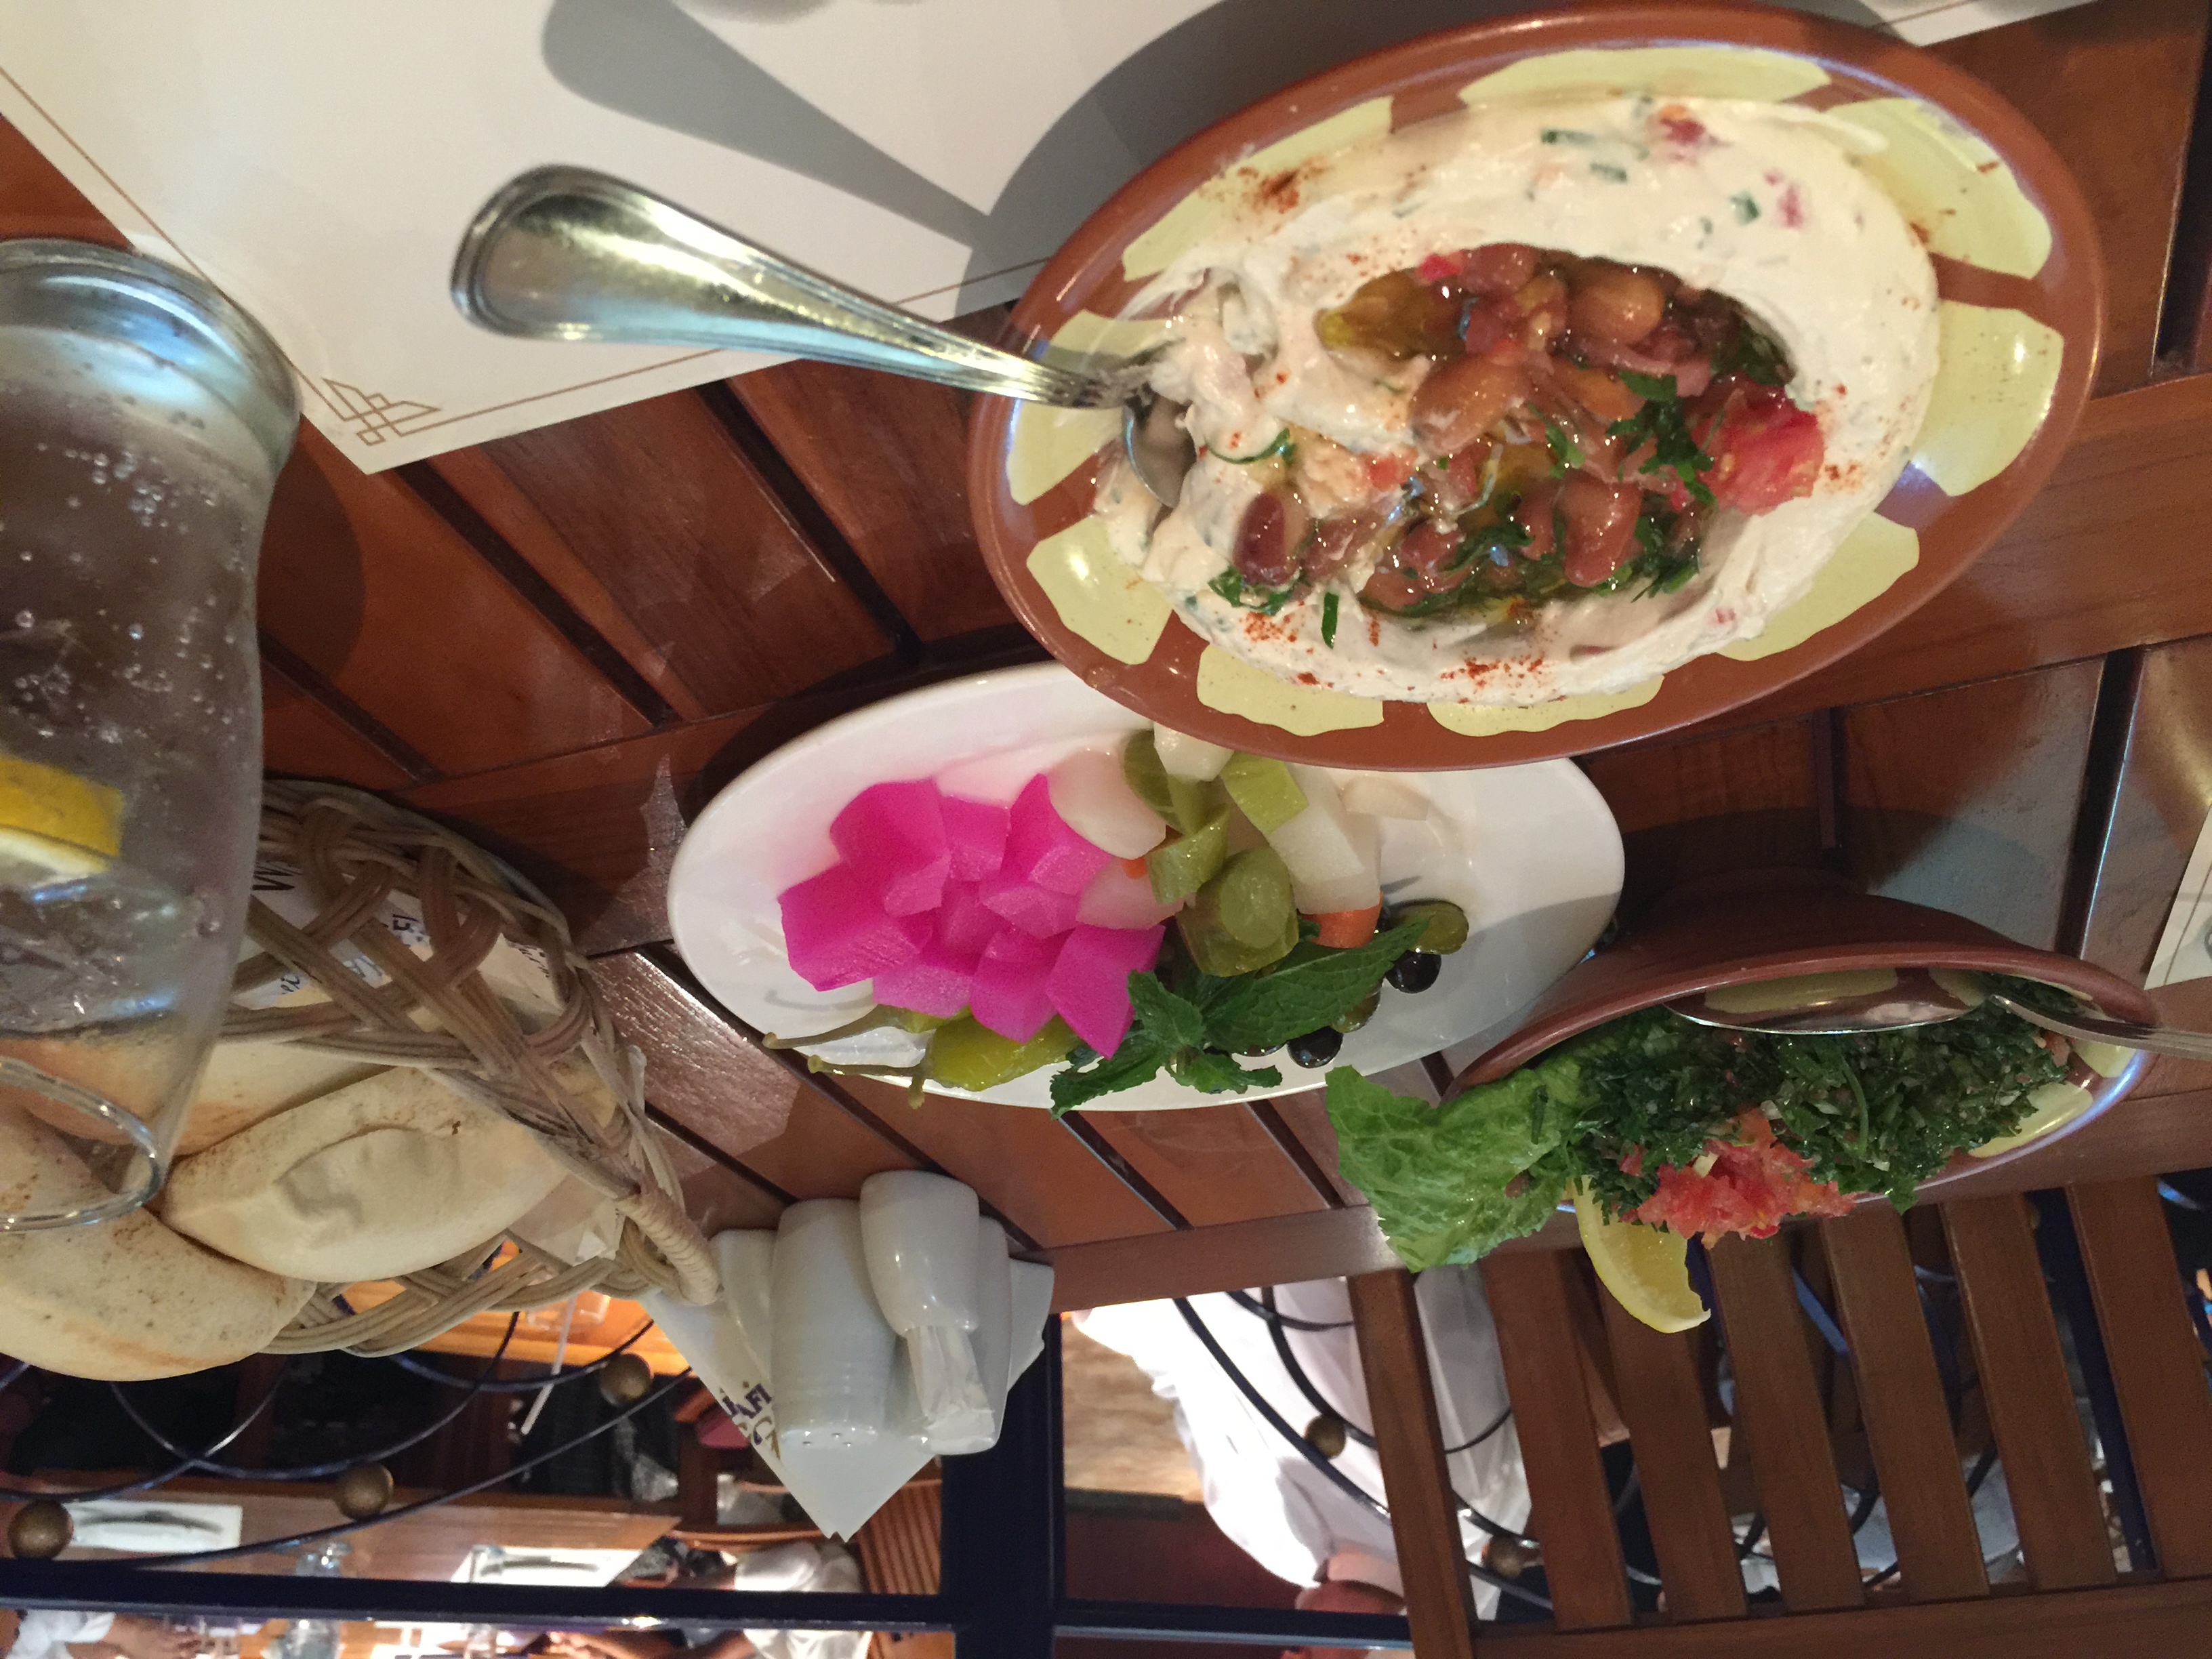 Dubai Food in a restaurant in Palm Jumeirah